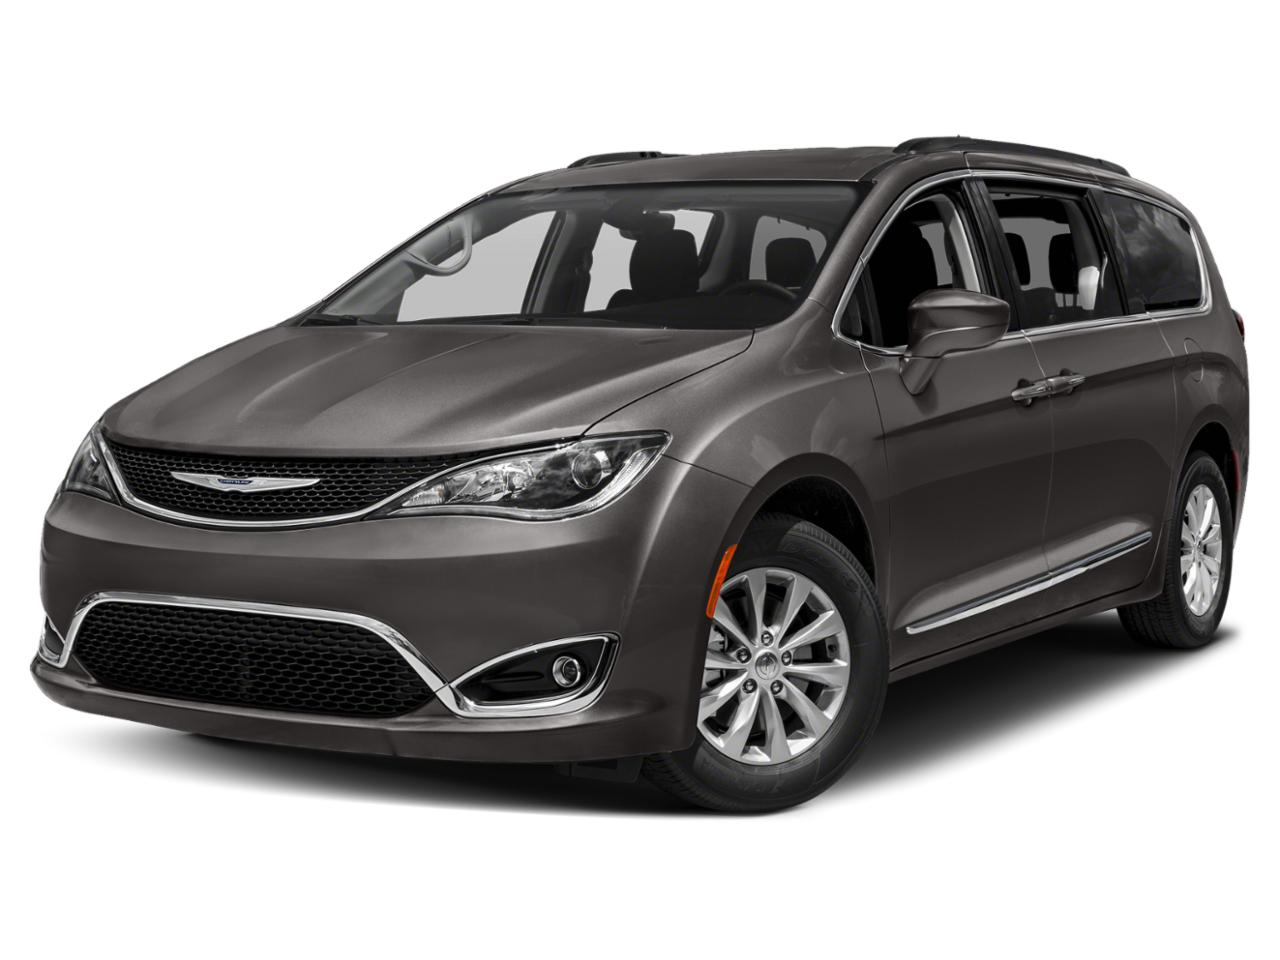 2019 Chrysler Pacifica Vehicle Photo in Portland, OR 97225